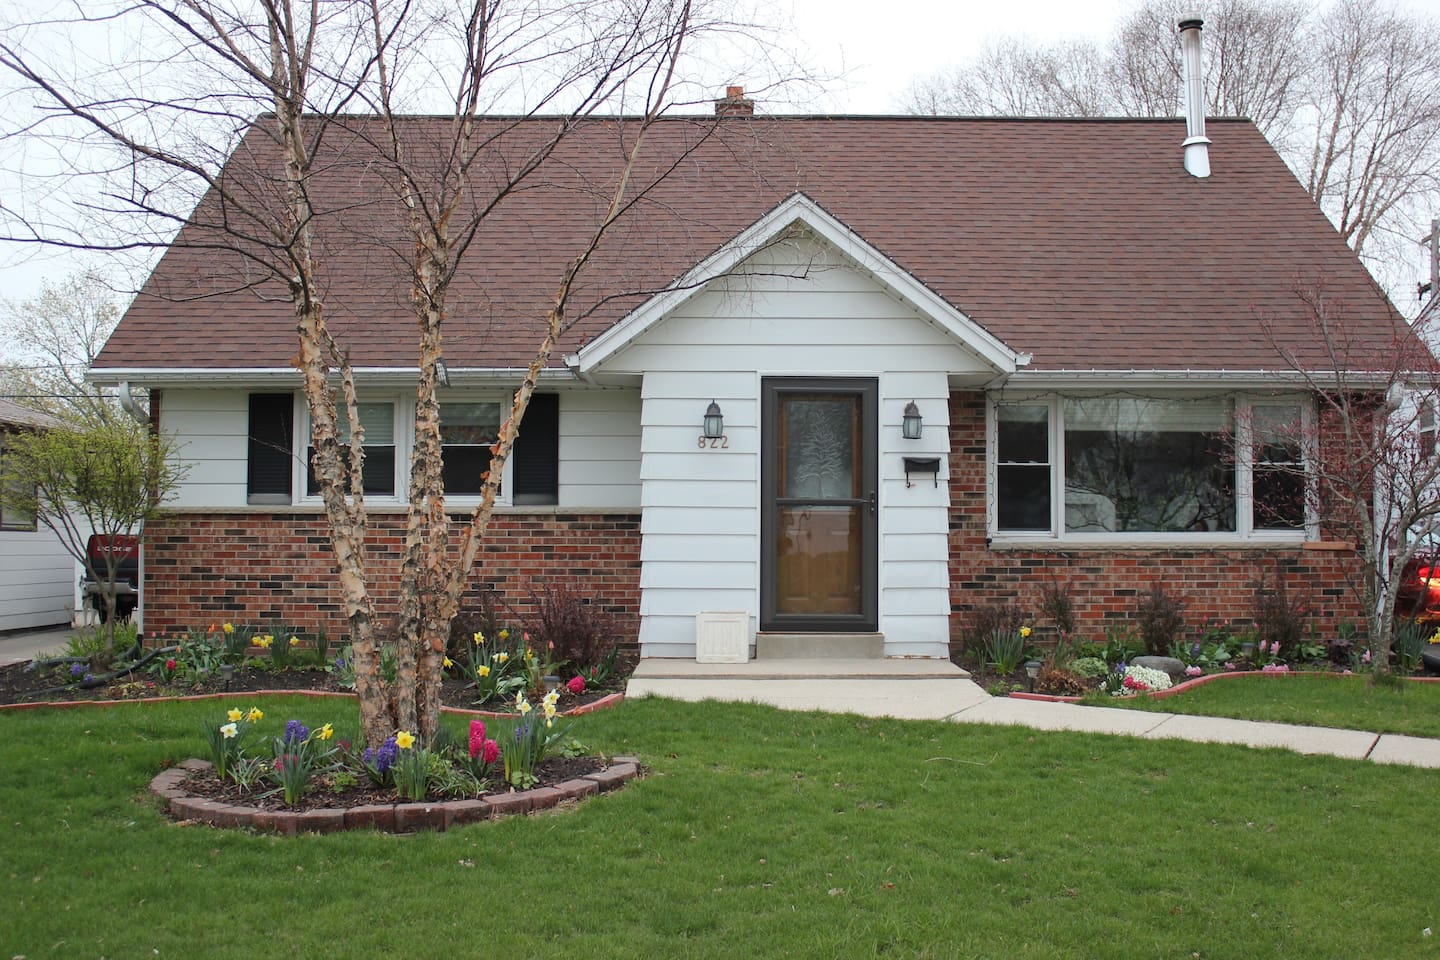 Front of home. All the spring flowers coming up! Summer is on it's way!